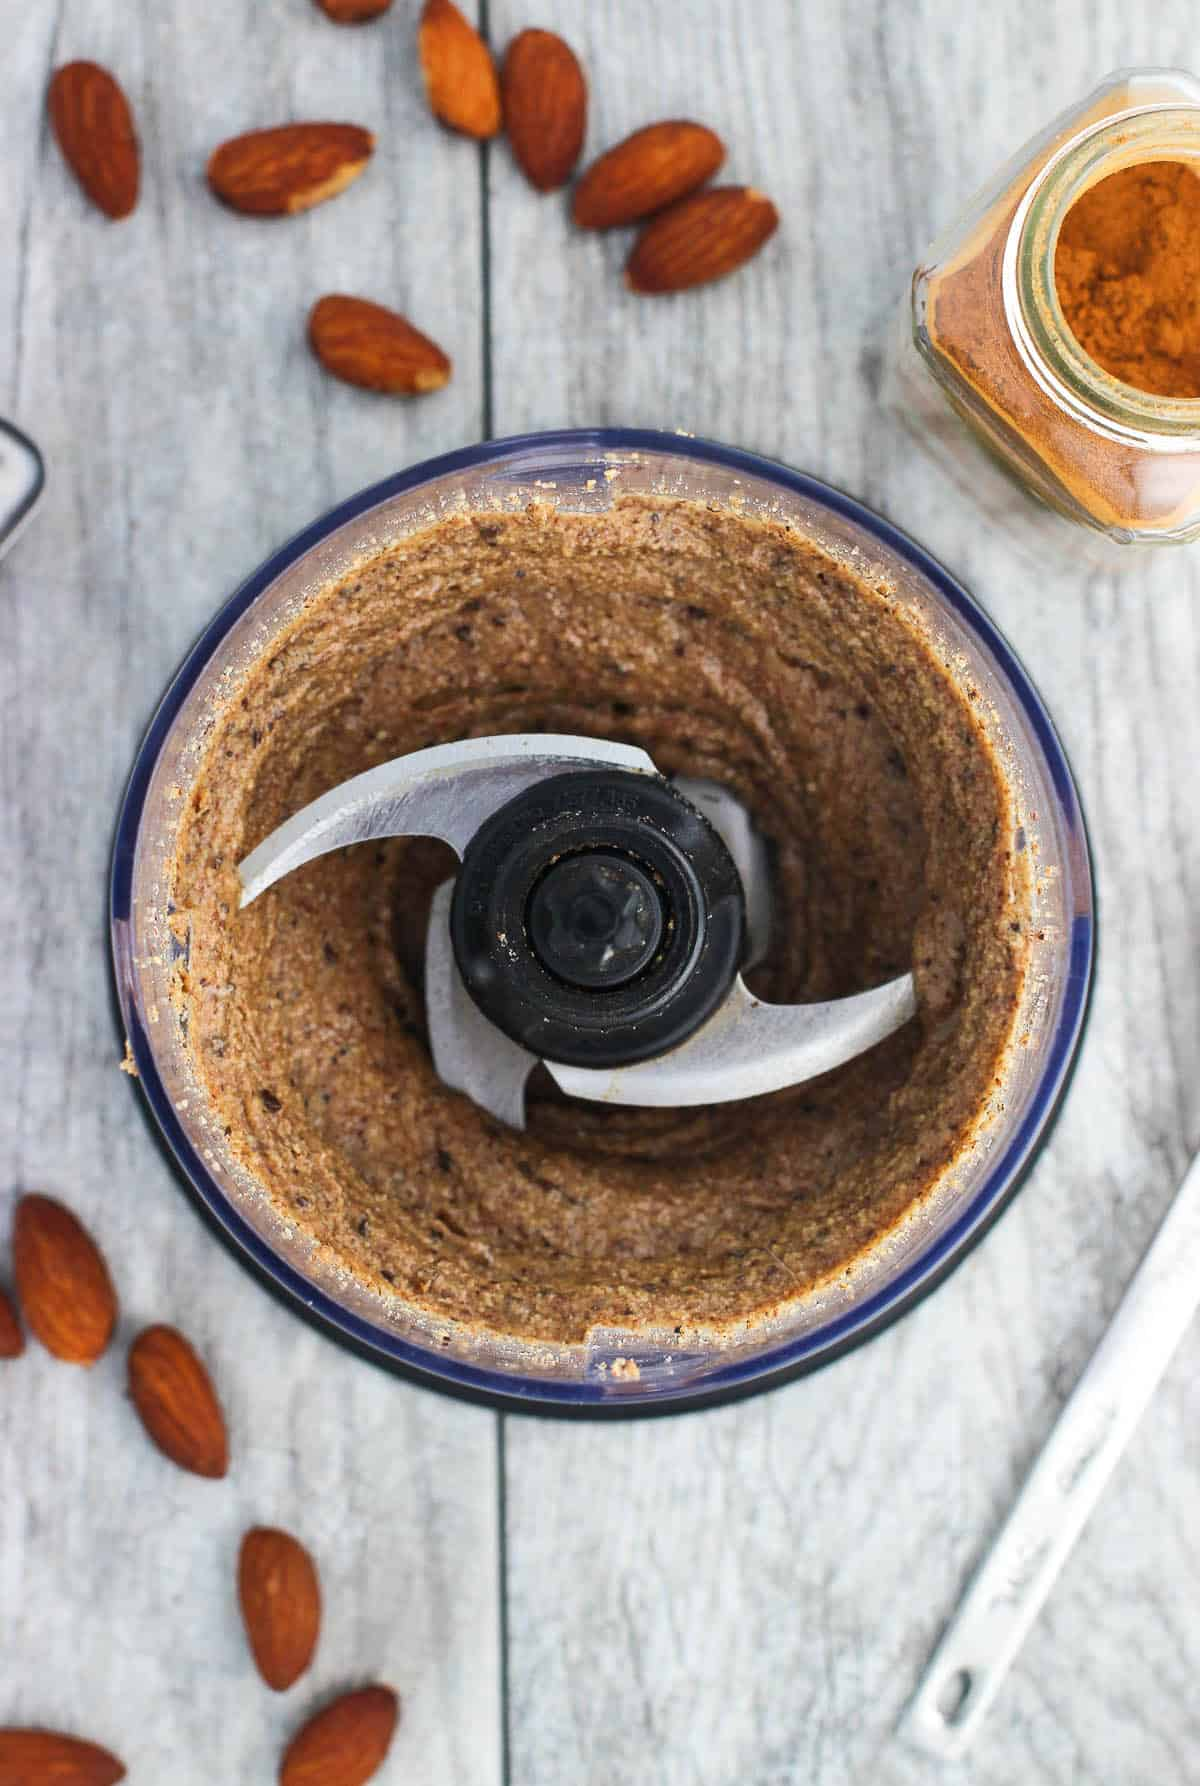 An overhead shot of the almond butter blended up in the food processor